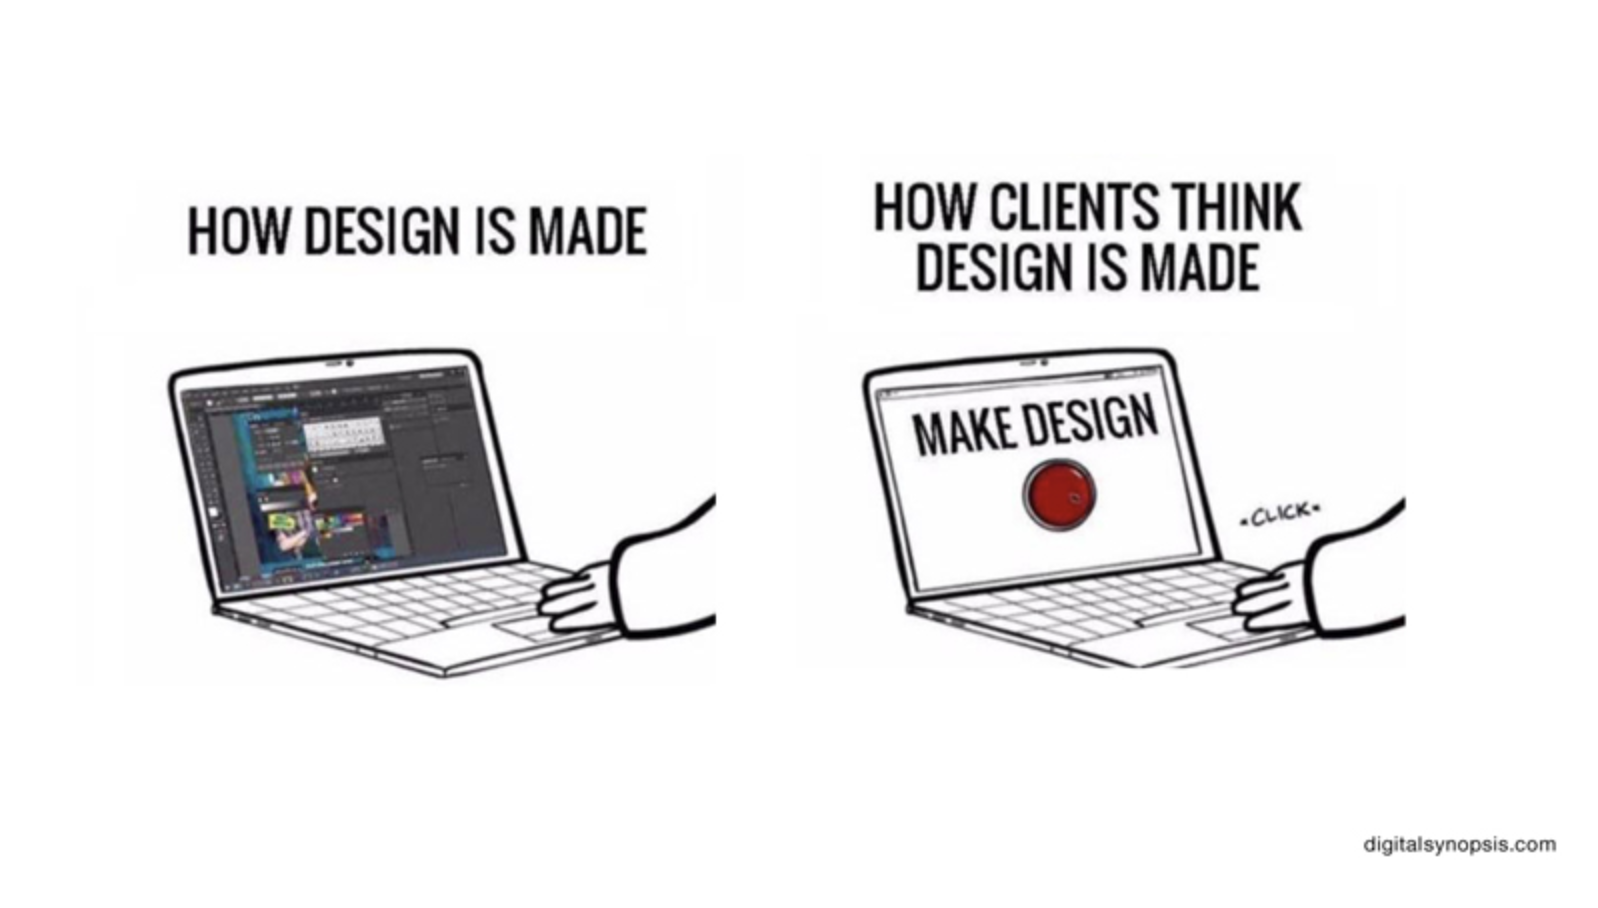 How design is made vs how clients think design is made